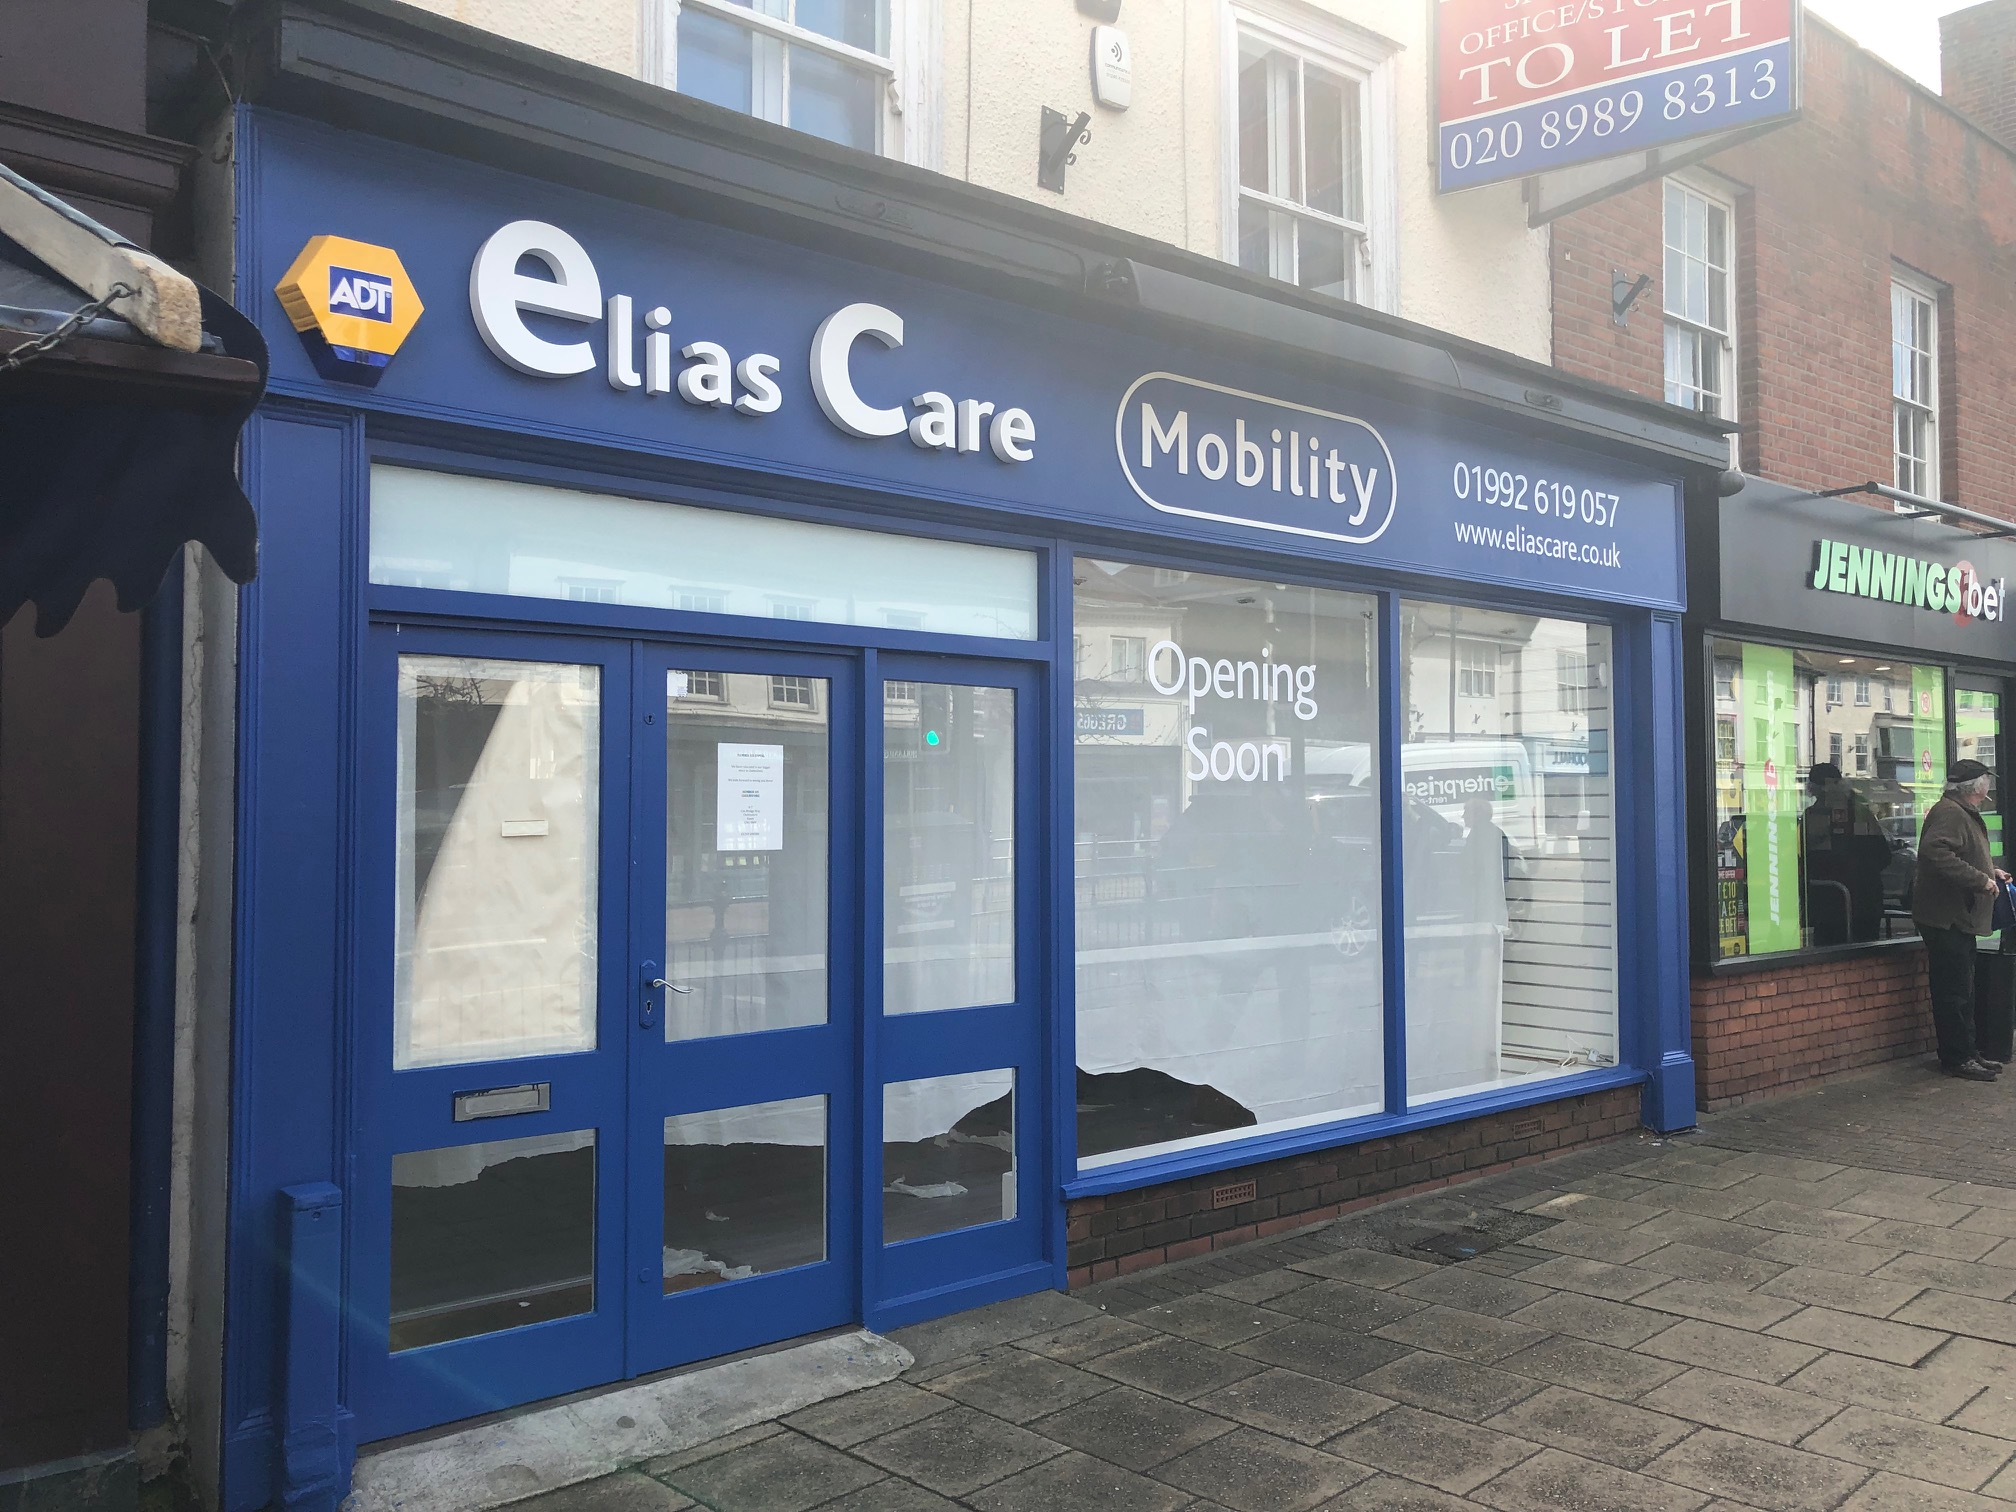 Elias Care will have a pre-opening ceremony on Monday, March 25